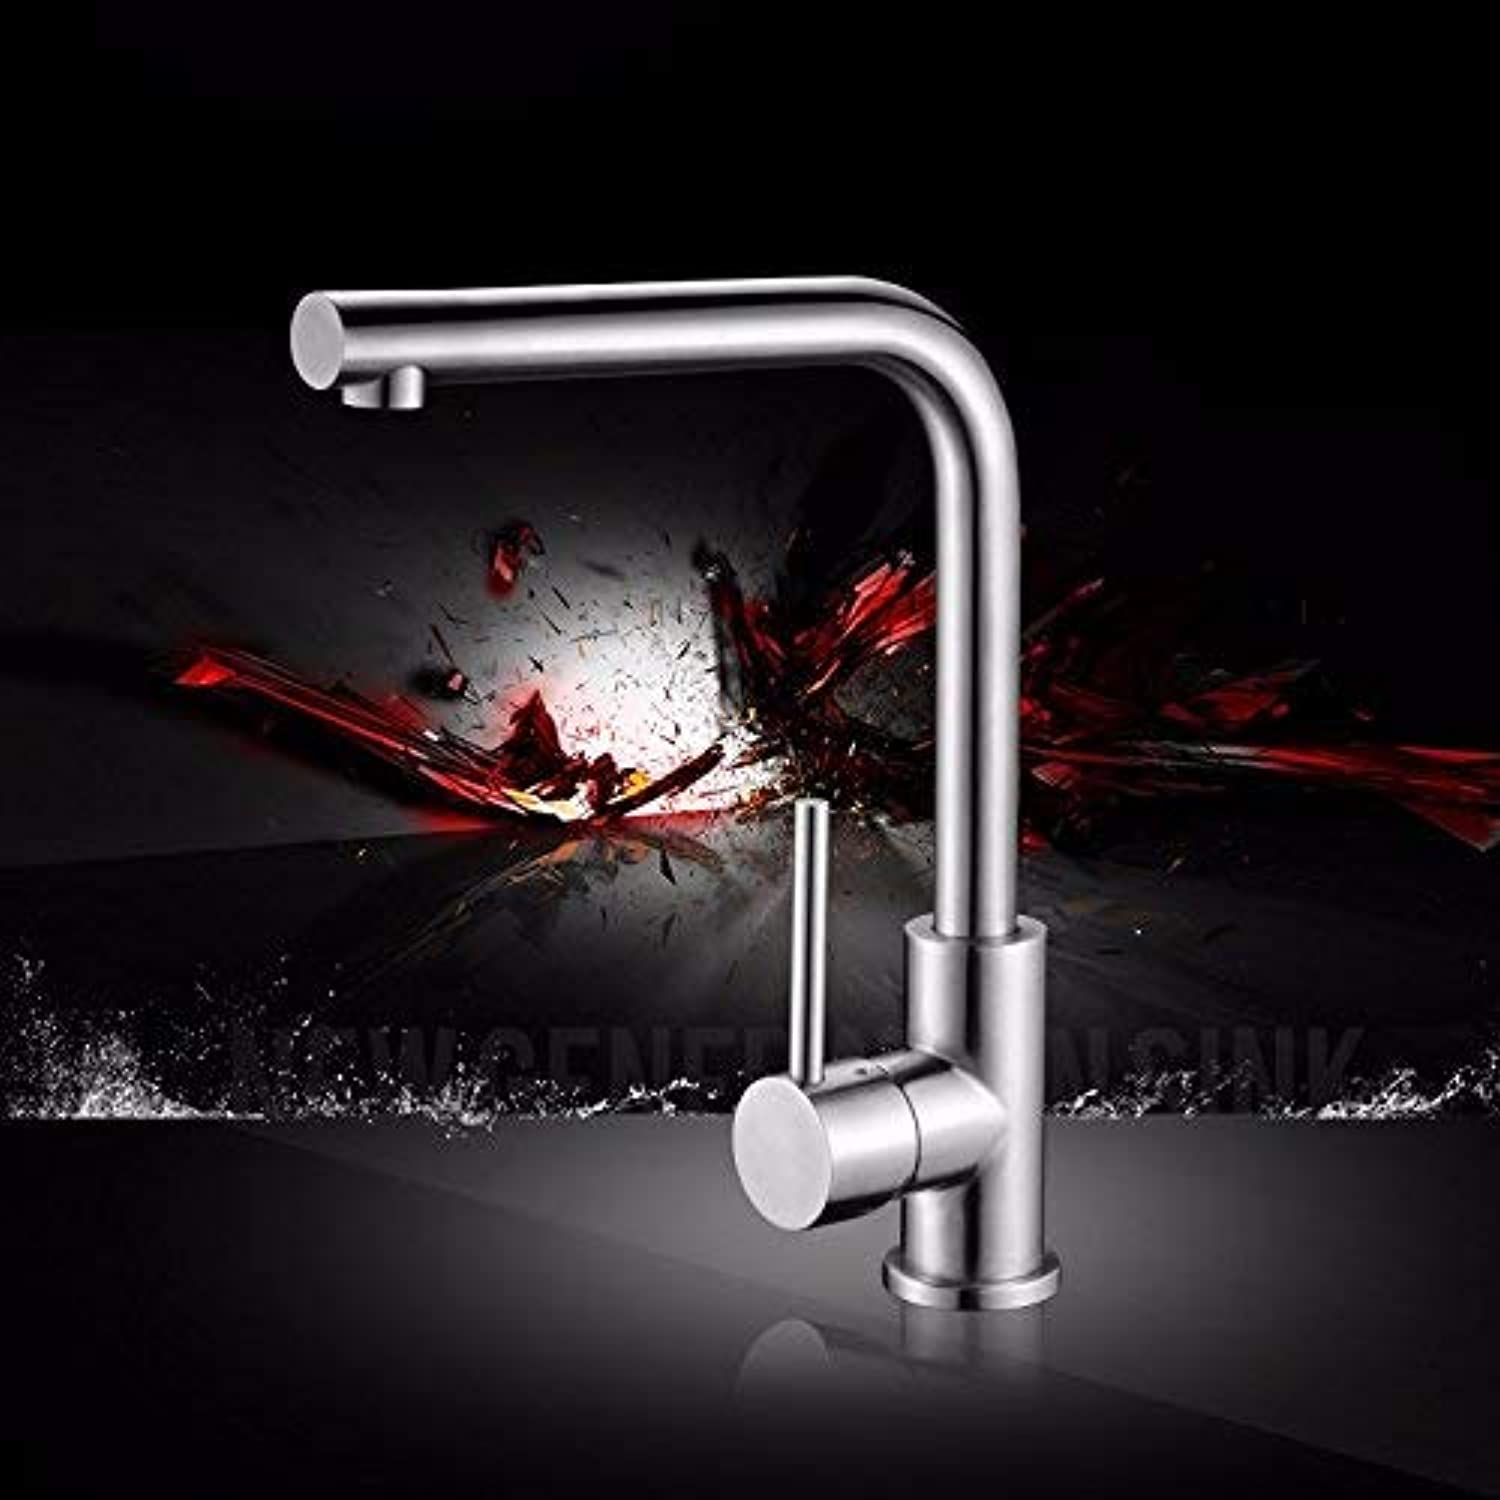 FAUCETS HOME Stainless Steel Kitchen Faucet, Sink Kitchen Faucet, Single Hole Single Handle redatable Faucet